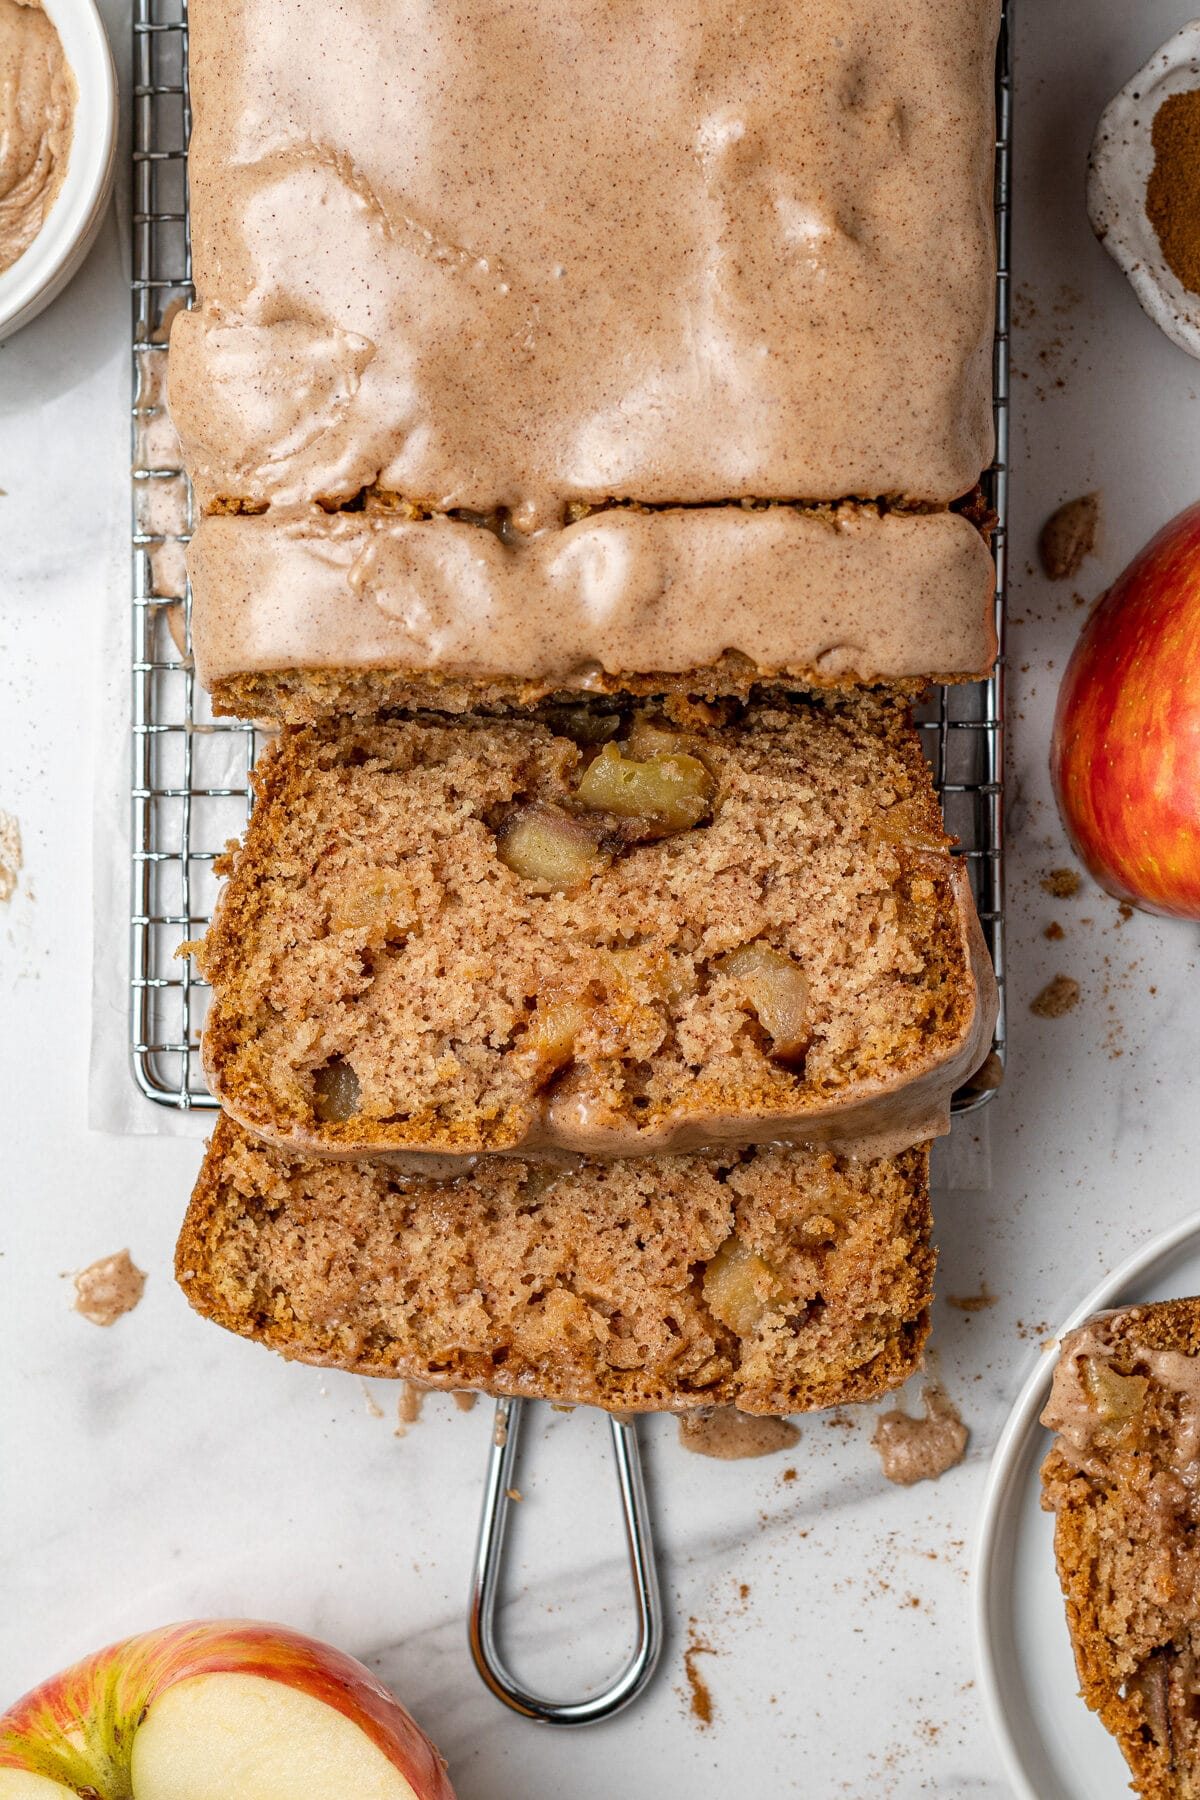 apple cake loaf sliced with half an apple beside it and another slice of apple cake on a plate